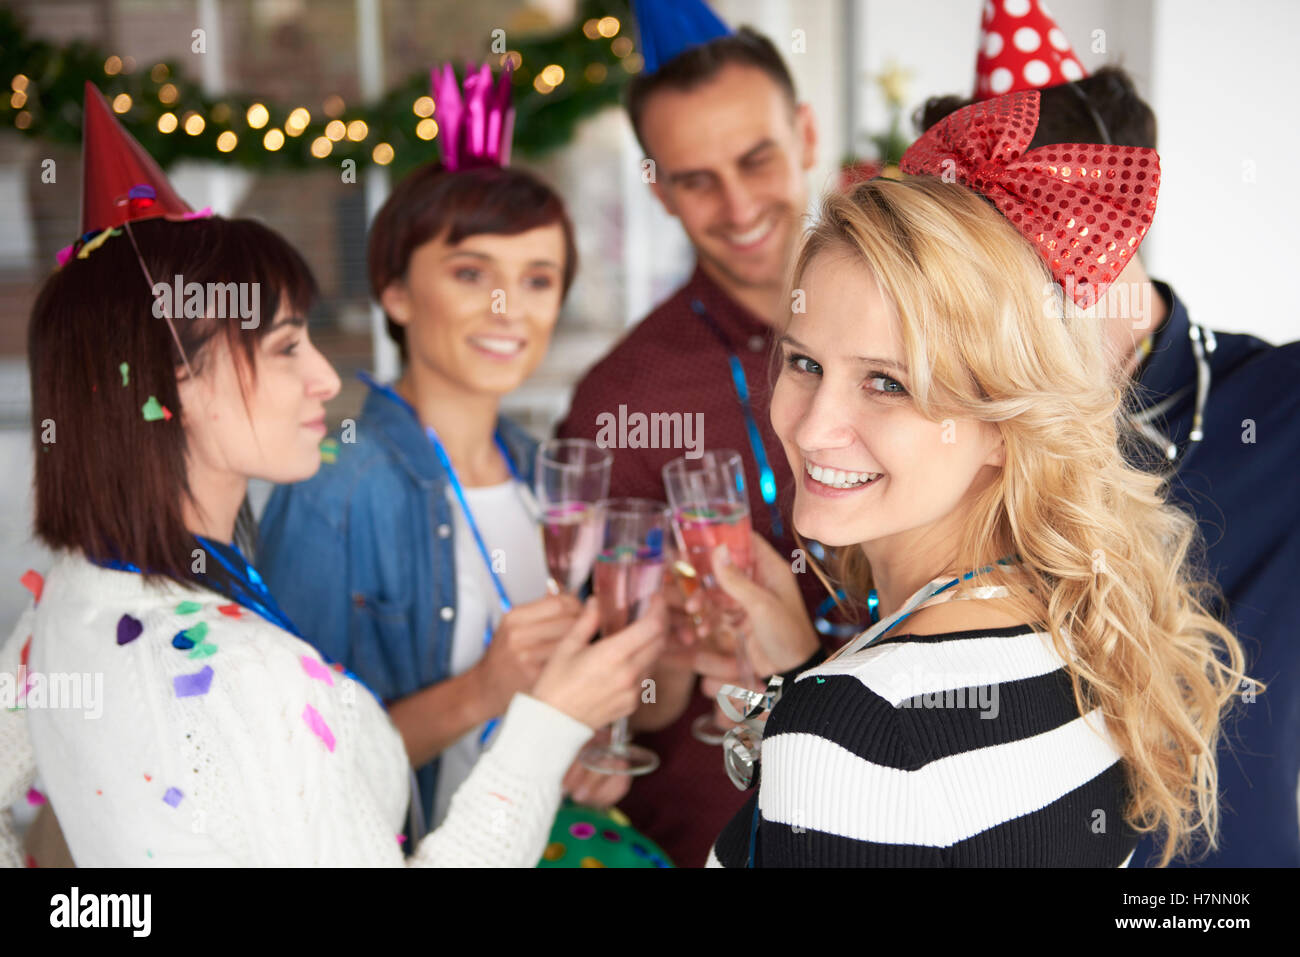 Good moods at office party - Stock Image